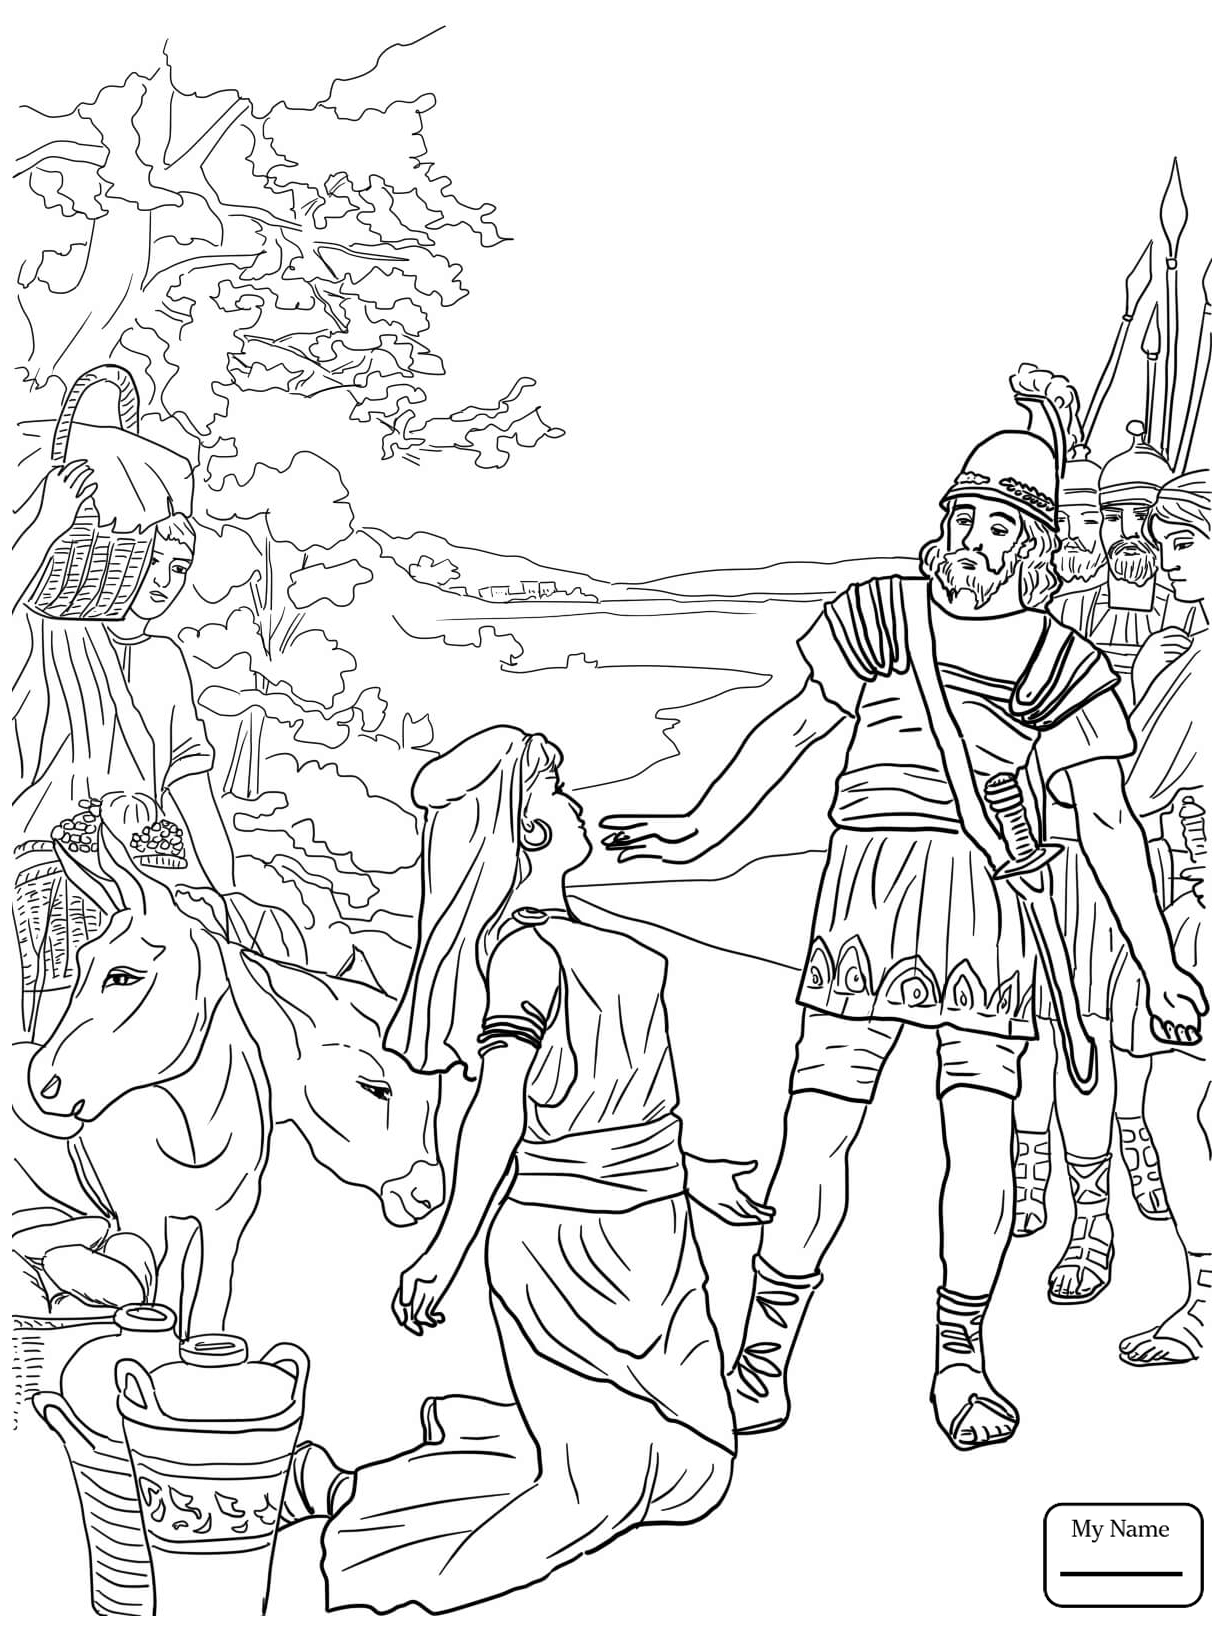 king david in the bible coloring pages | King David Drawing at GetDrawings.com | Free for personal ...